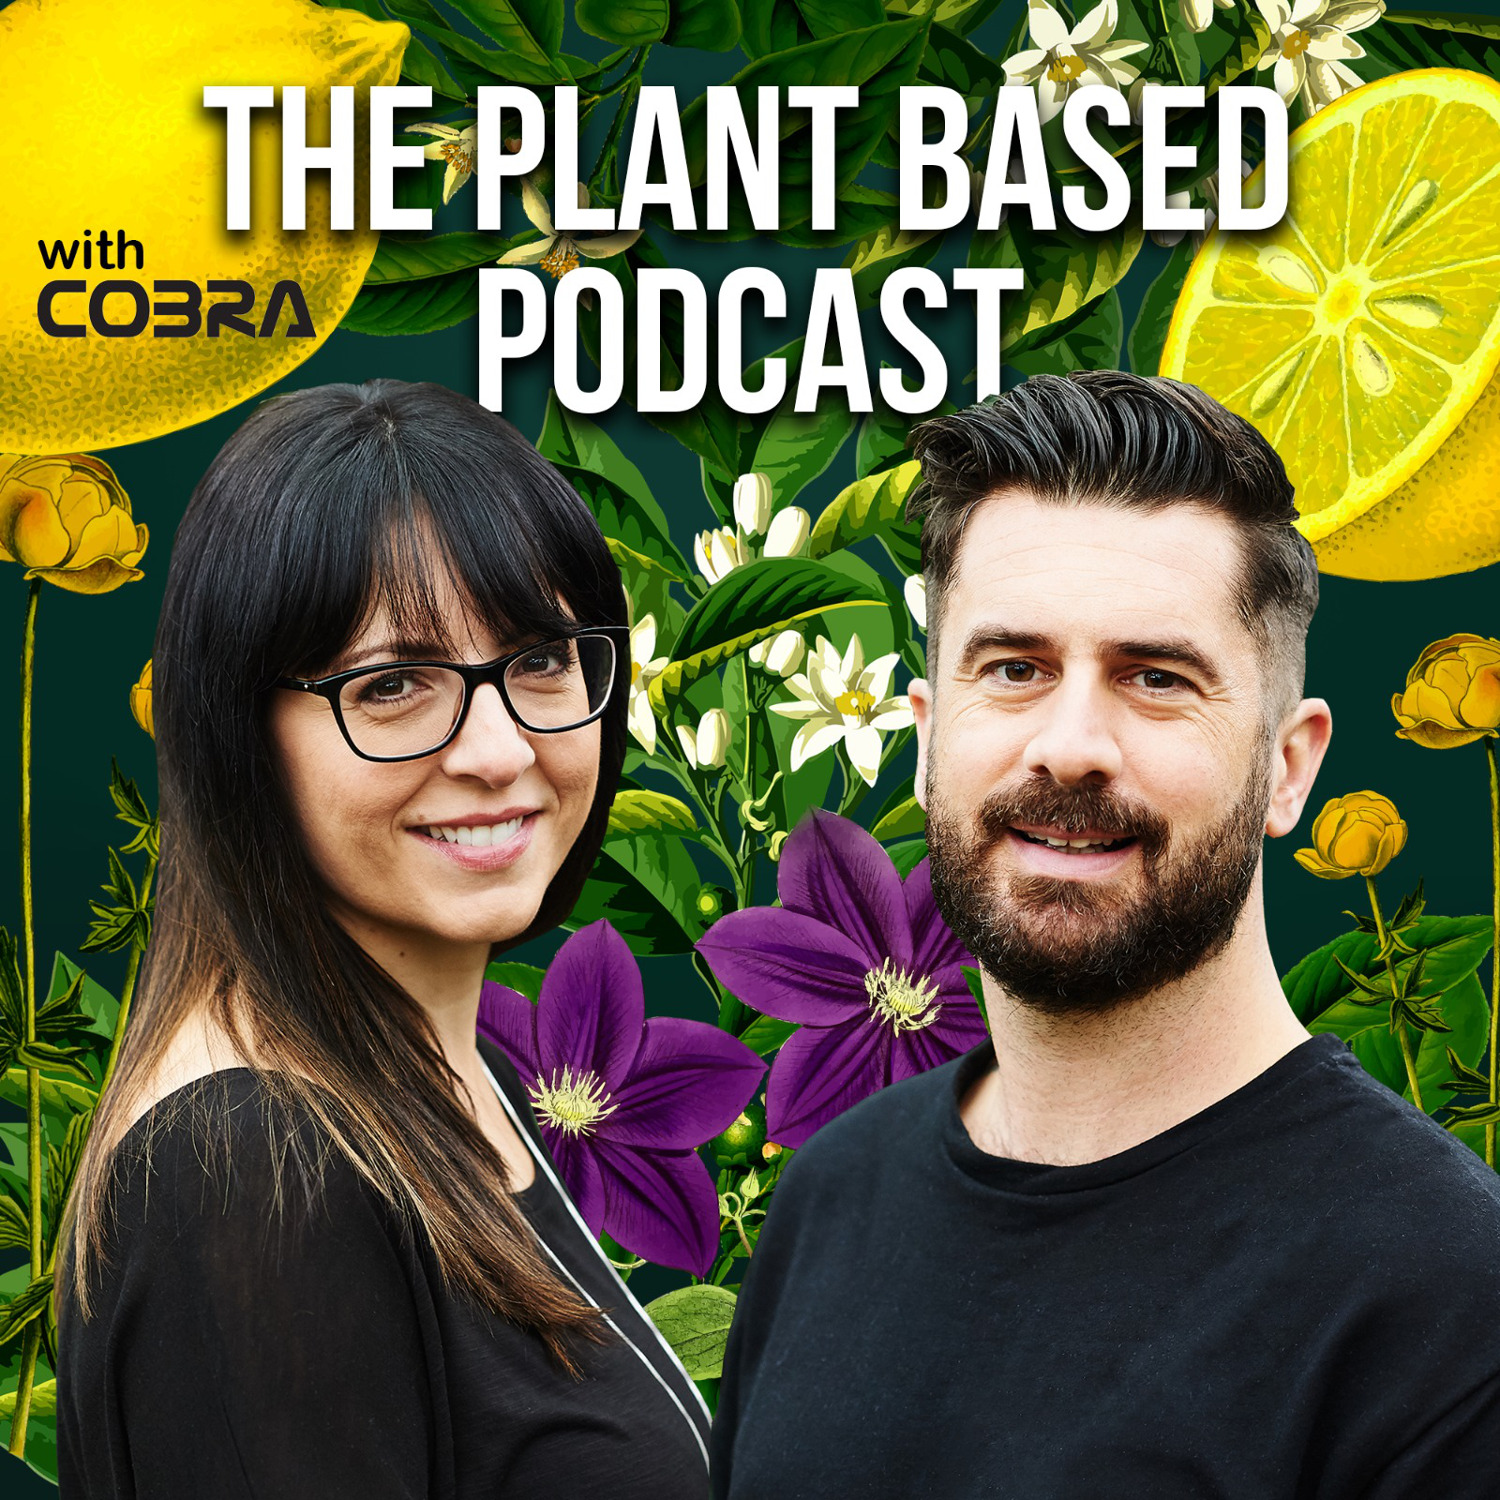 The Plant Based Podcast S4 - News 09/05/21